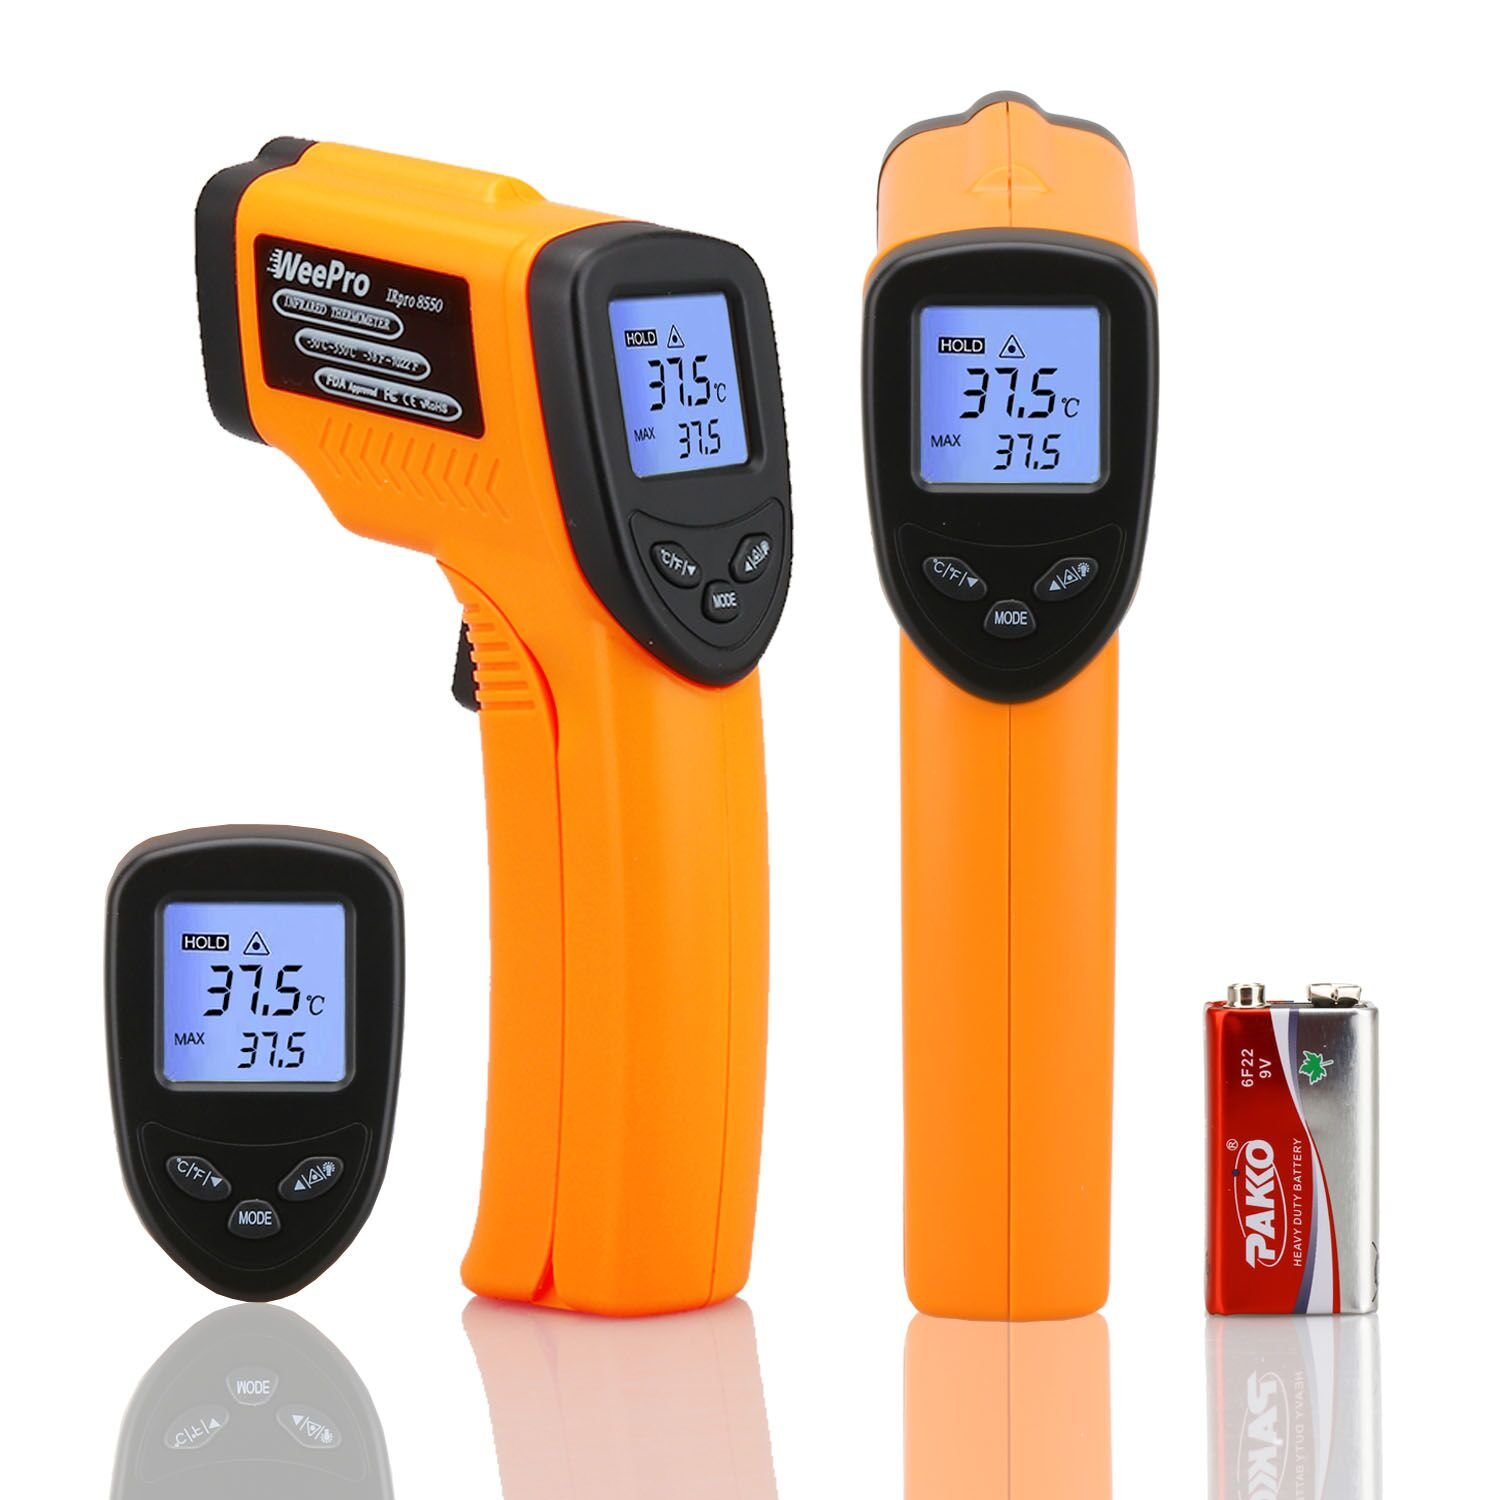 WeePro Digital Infrared Thermometer Non-contact Laser Temperature Gun -58℉ to 1022℉ (-50℃~550℃), Temp Controller Gauge for Kitchen, BBQ, Cooking, Industrial, Car, Auto Maintenance with Adjustable EMS